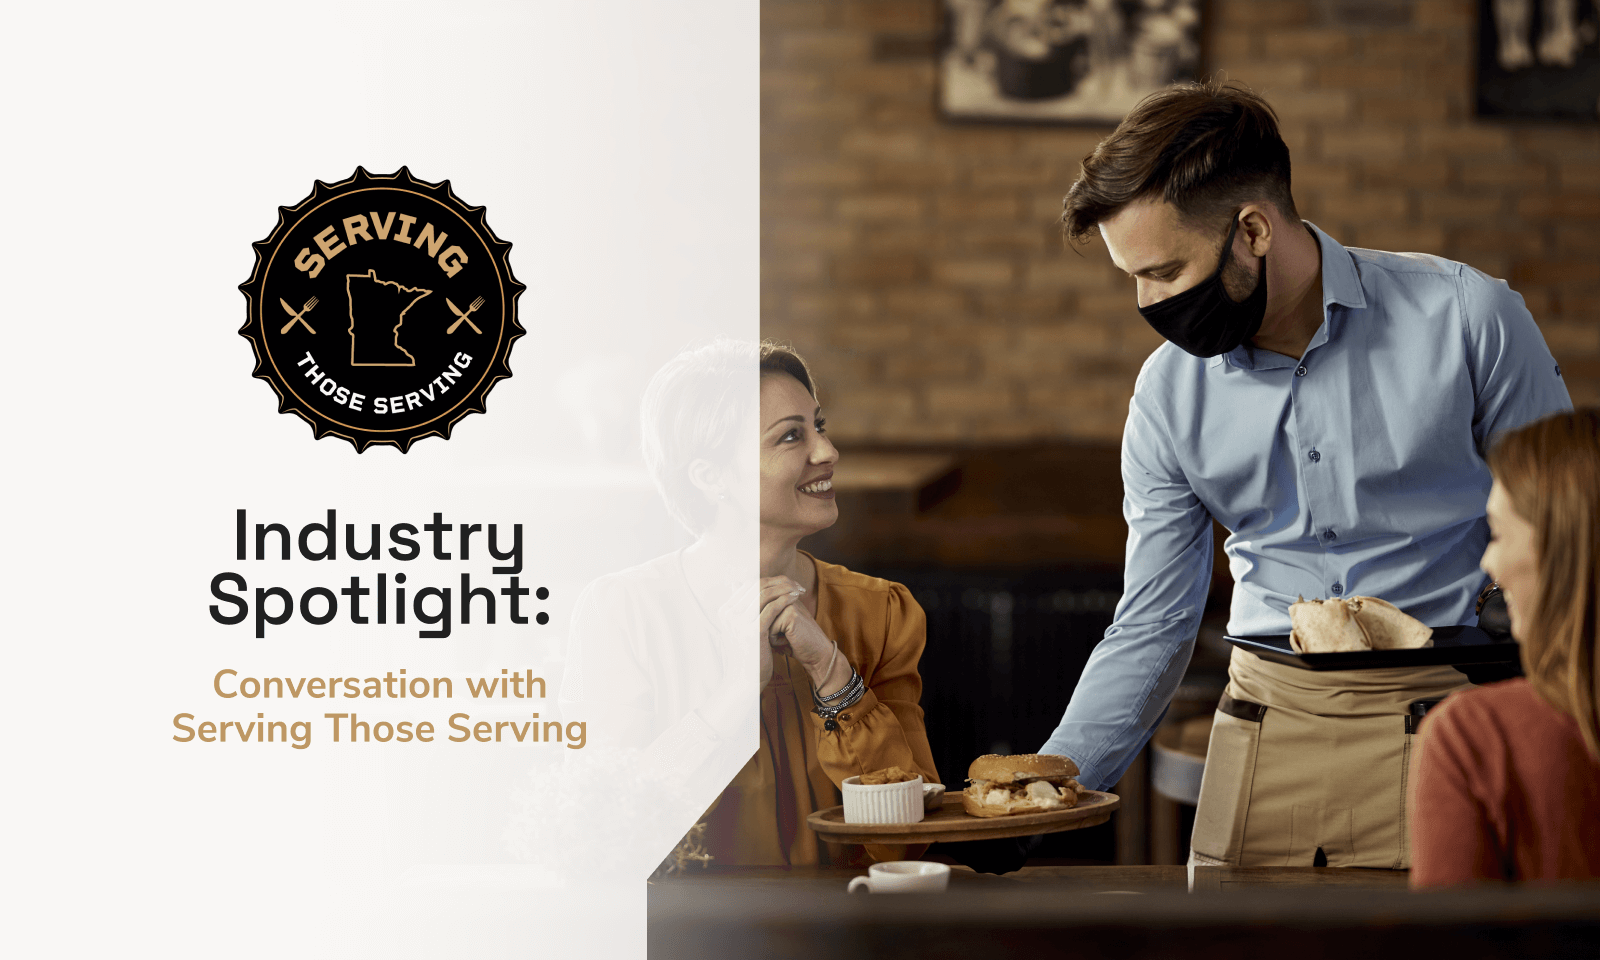 Industry Spotlight: Conversation with Serving Those Serving